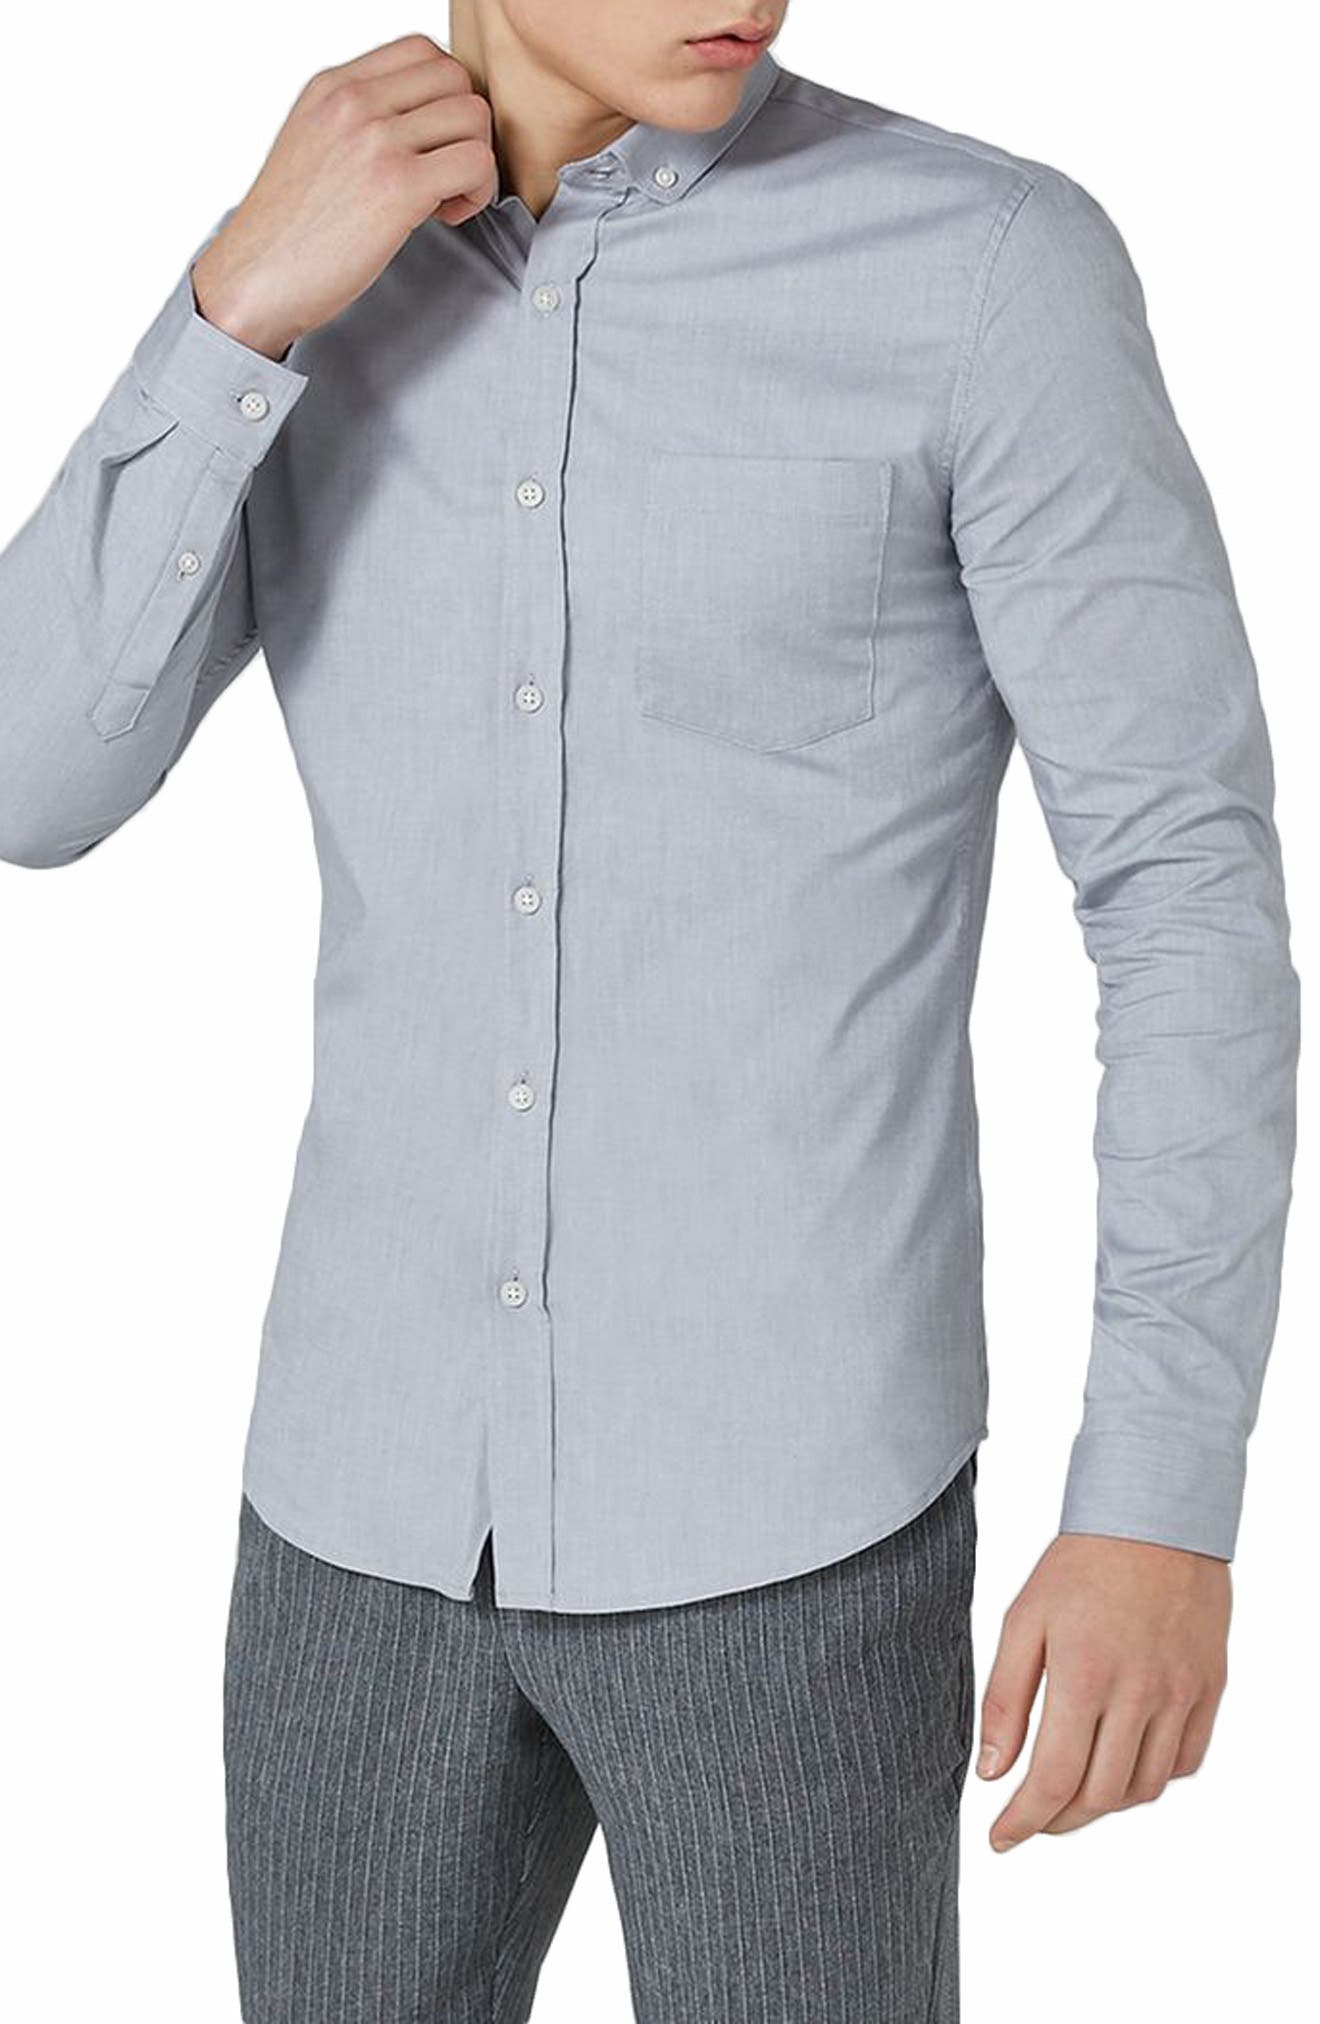 Muscle Fit Oxford Shirt,                             Main thumbnail 1, color,                             GREY